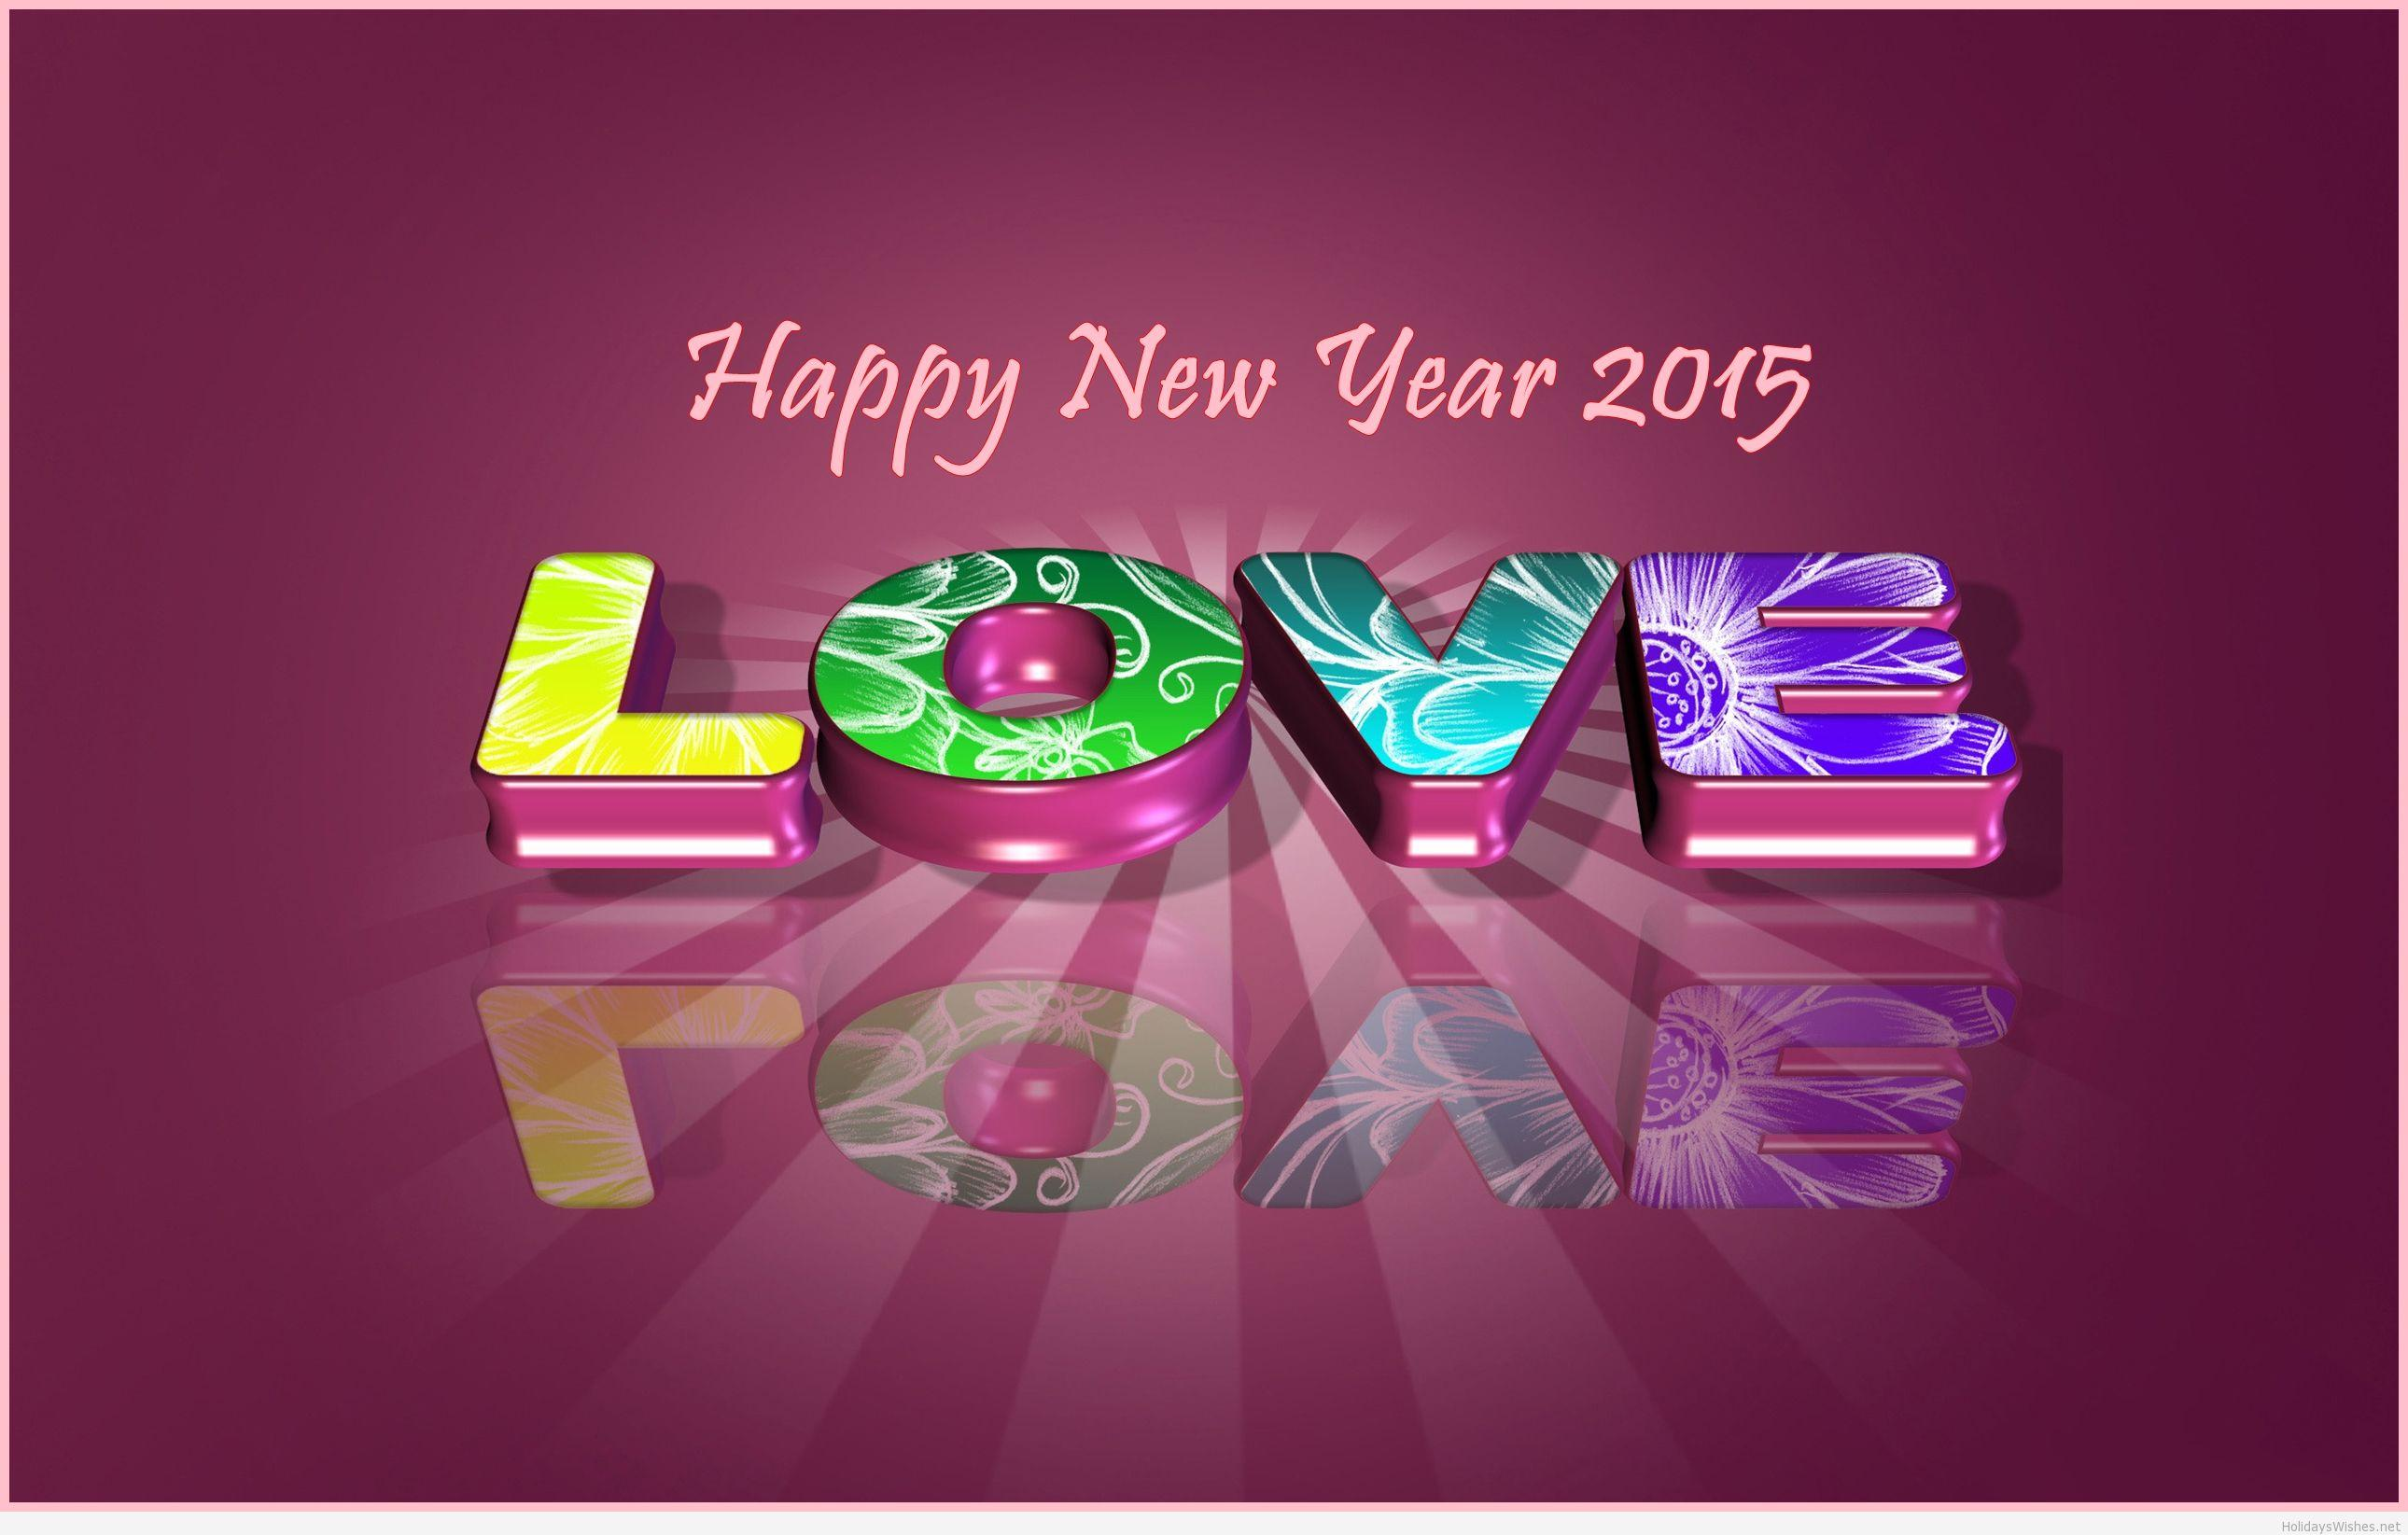 Love wallpapers new year 2015 image